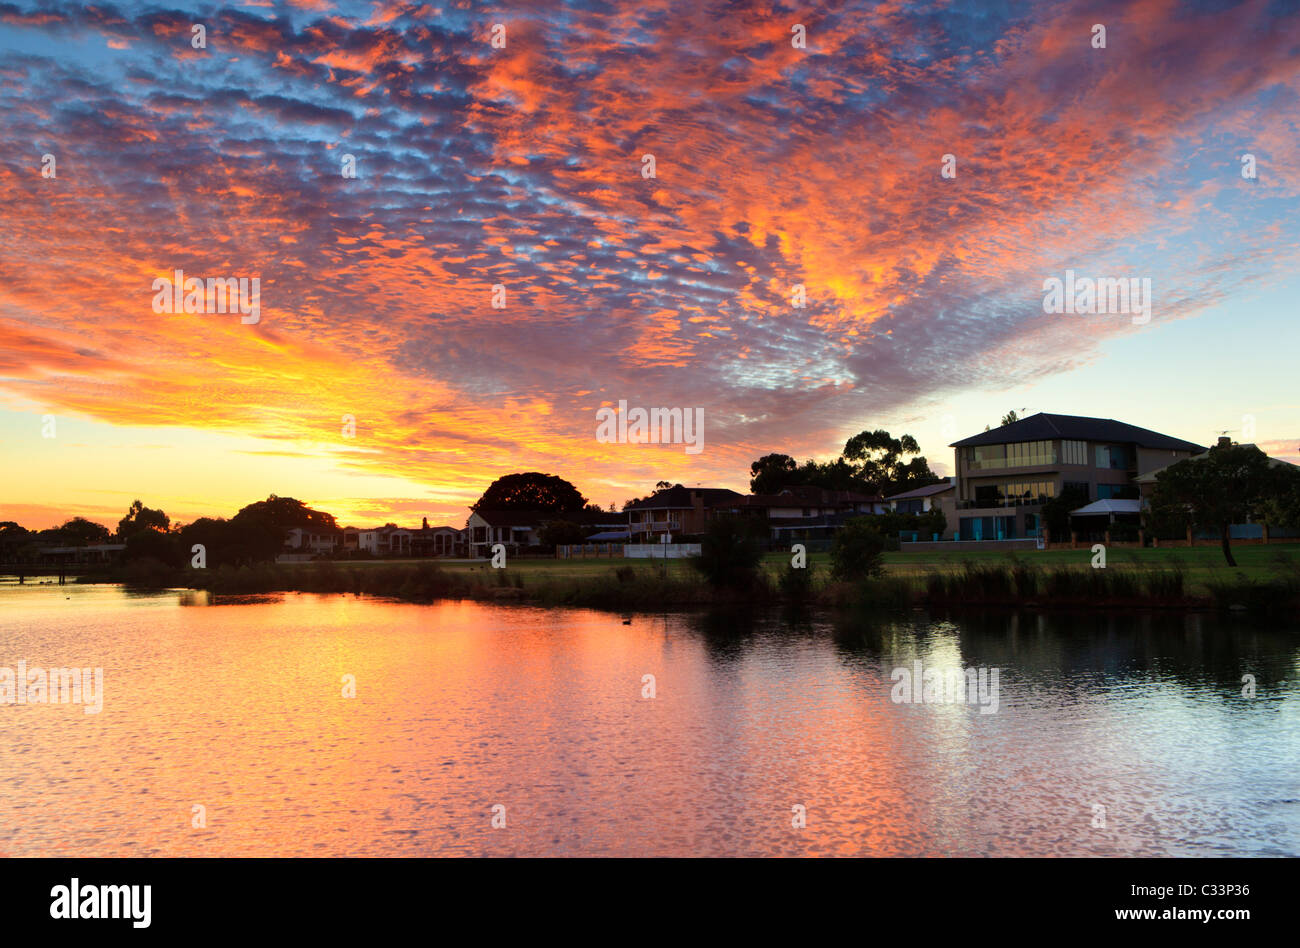 Large lakeside houses at sunset in affluent South Perth, Western Australia. - Stock Image